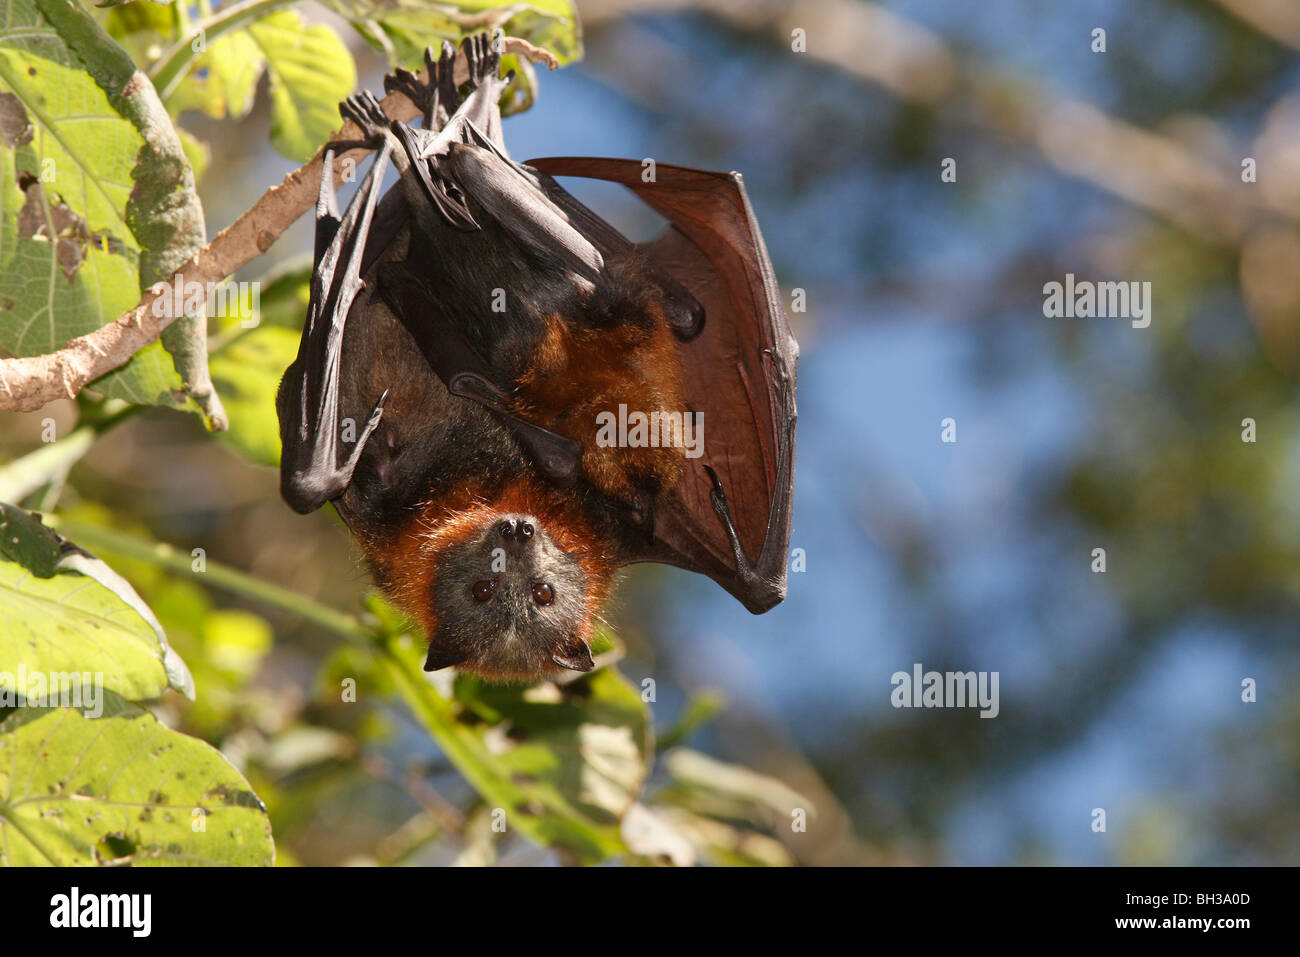 grey-headed-flying-foxes-pteropus-poliocephalus-there-is-a-juvenile-BH3A0D.jpg